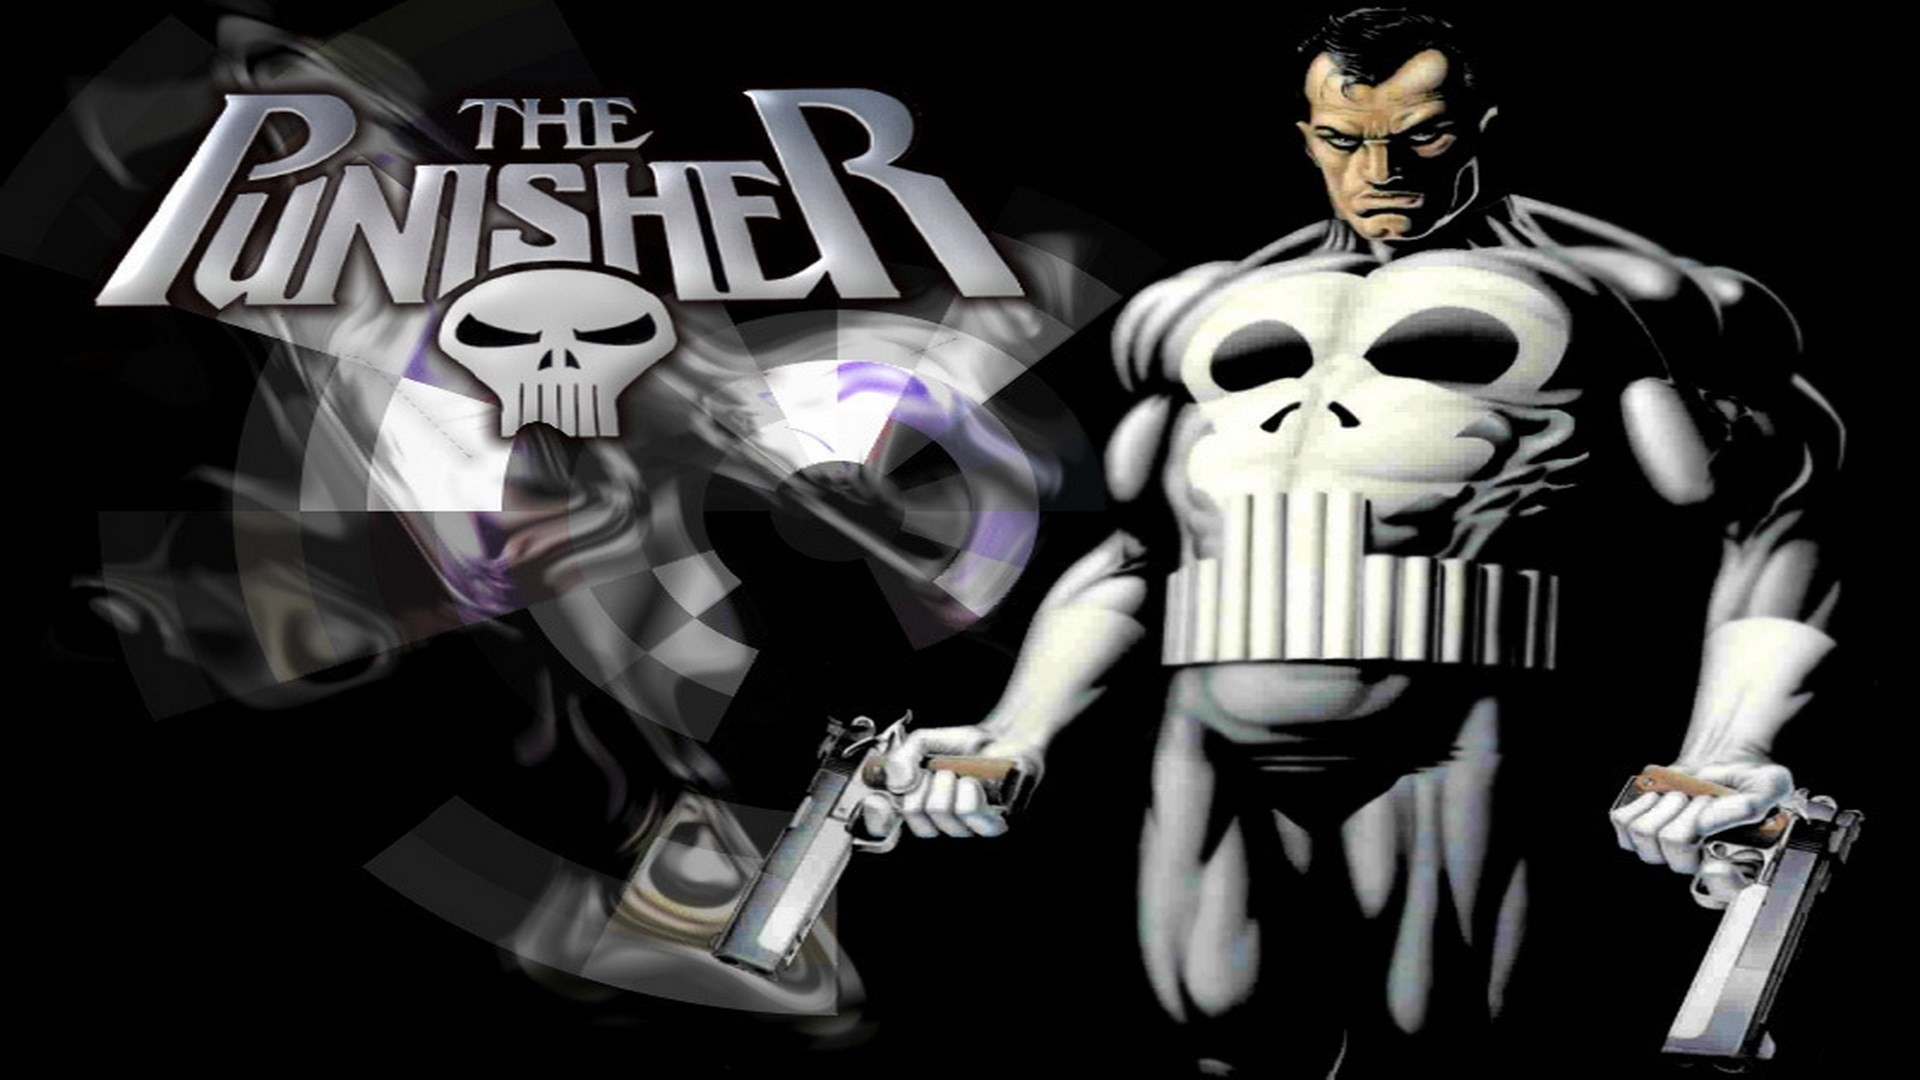 1920x1080 punisher wallpaper hd pack